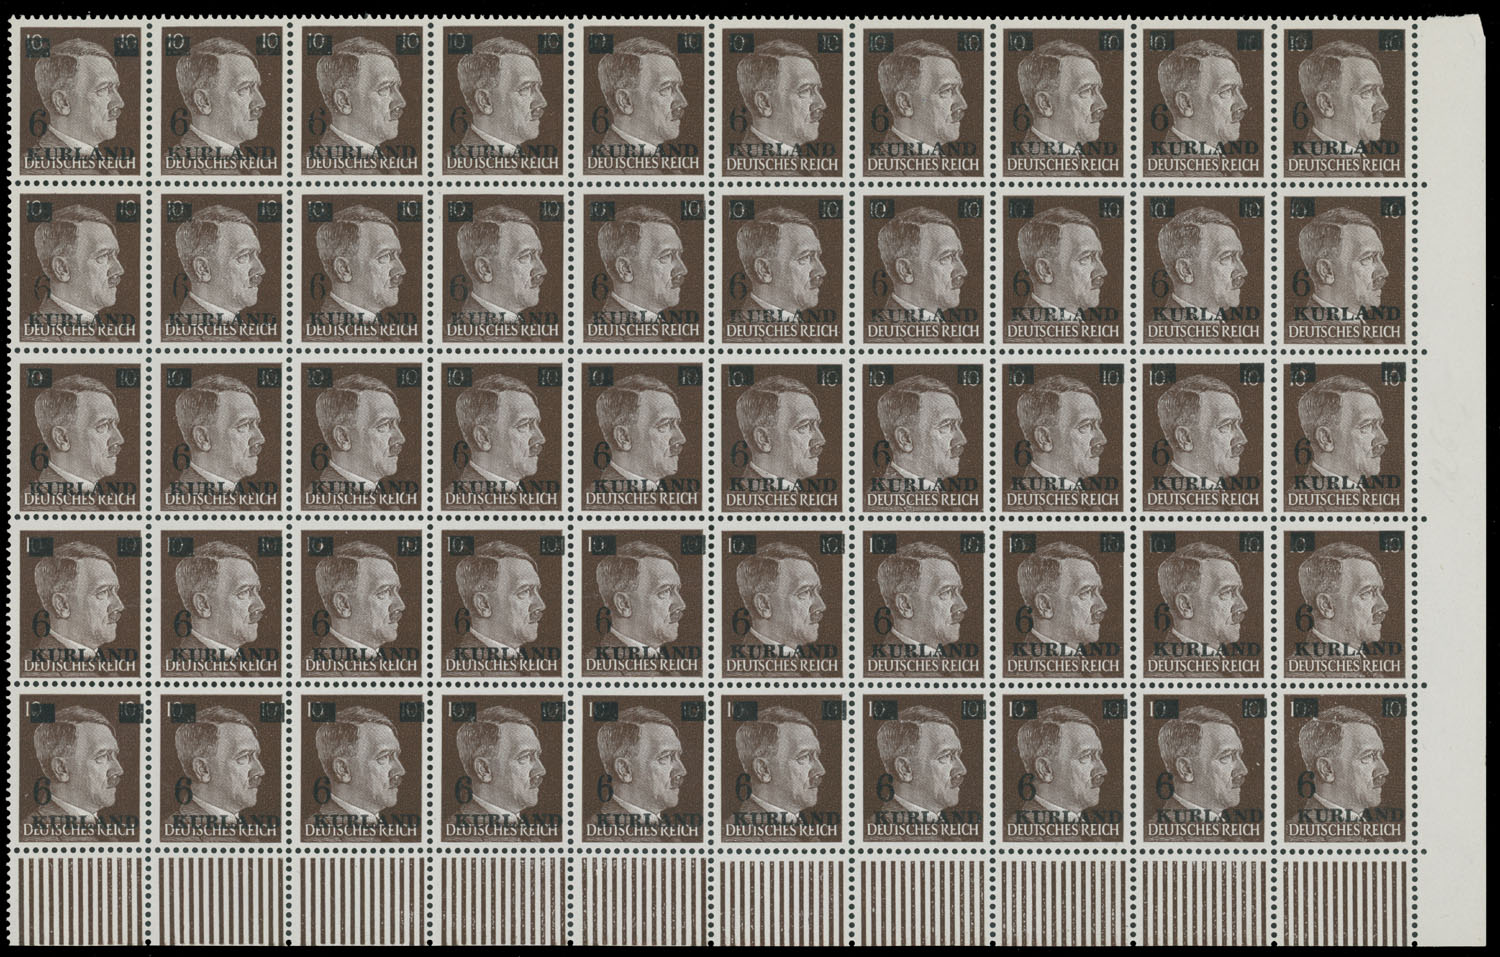 Lot 418 - germany. occupation issues of the world war ii Latvia (Lettland) - Kurland -  Raritan Stamps Inc. Live Bidding Auction #80